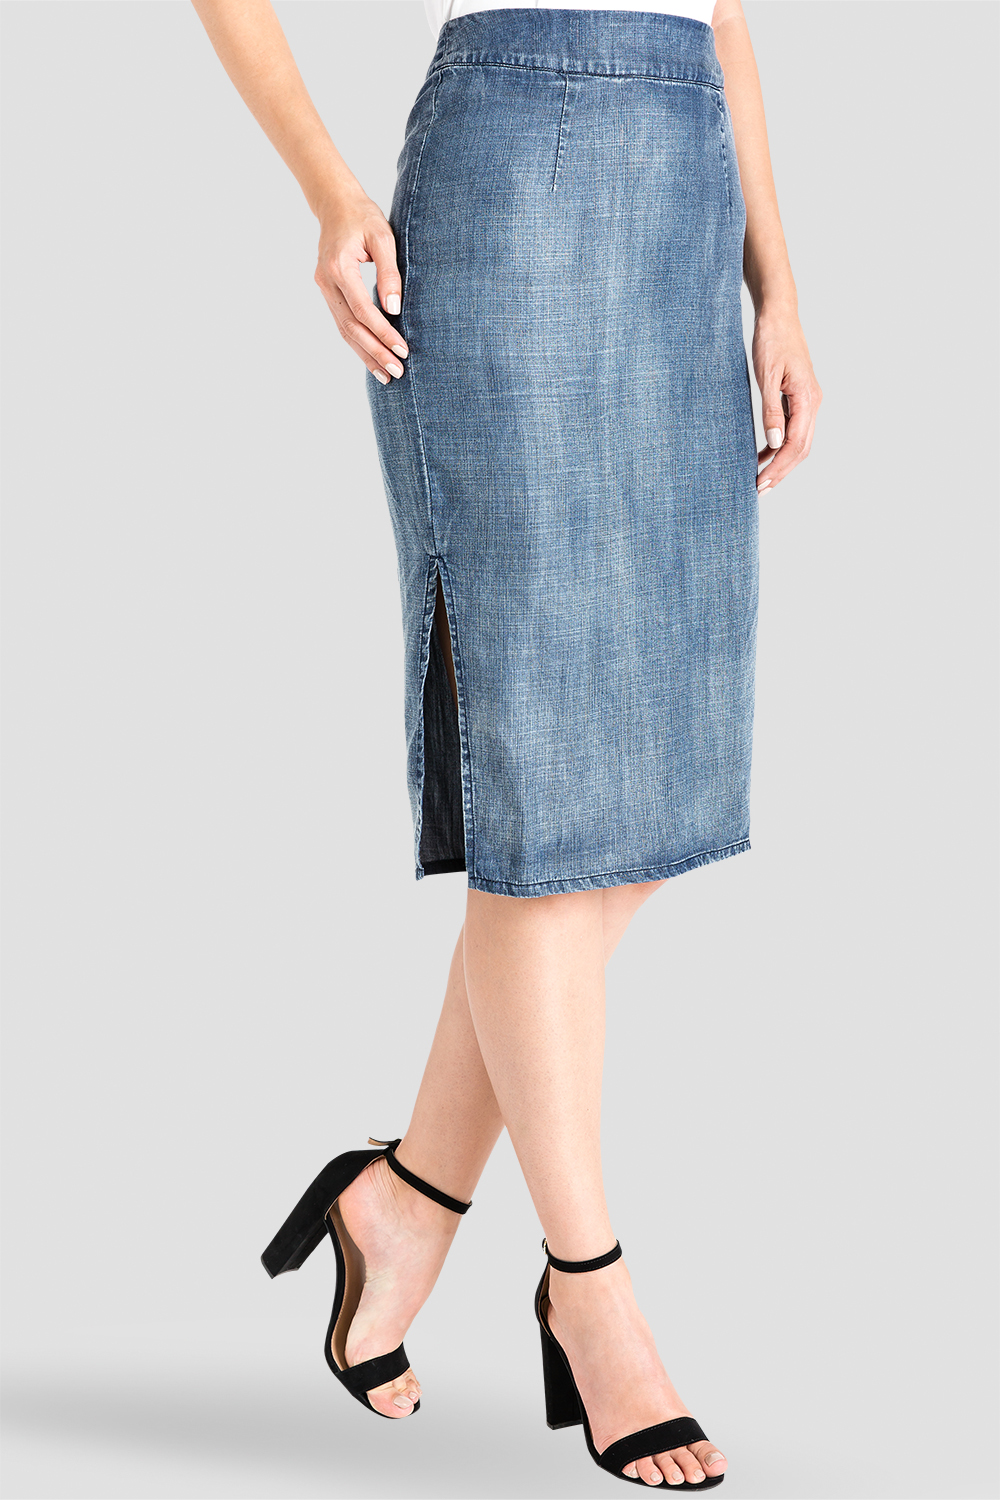 Standards & Practices Knee Length Tencel Denim Pencil Skirt